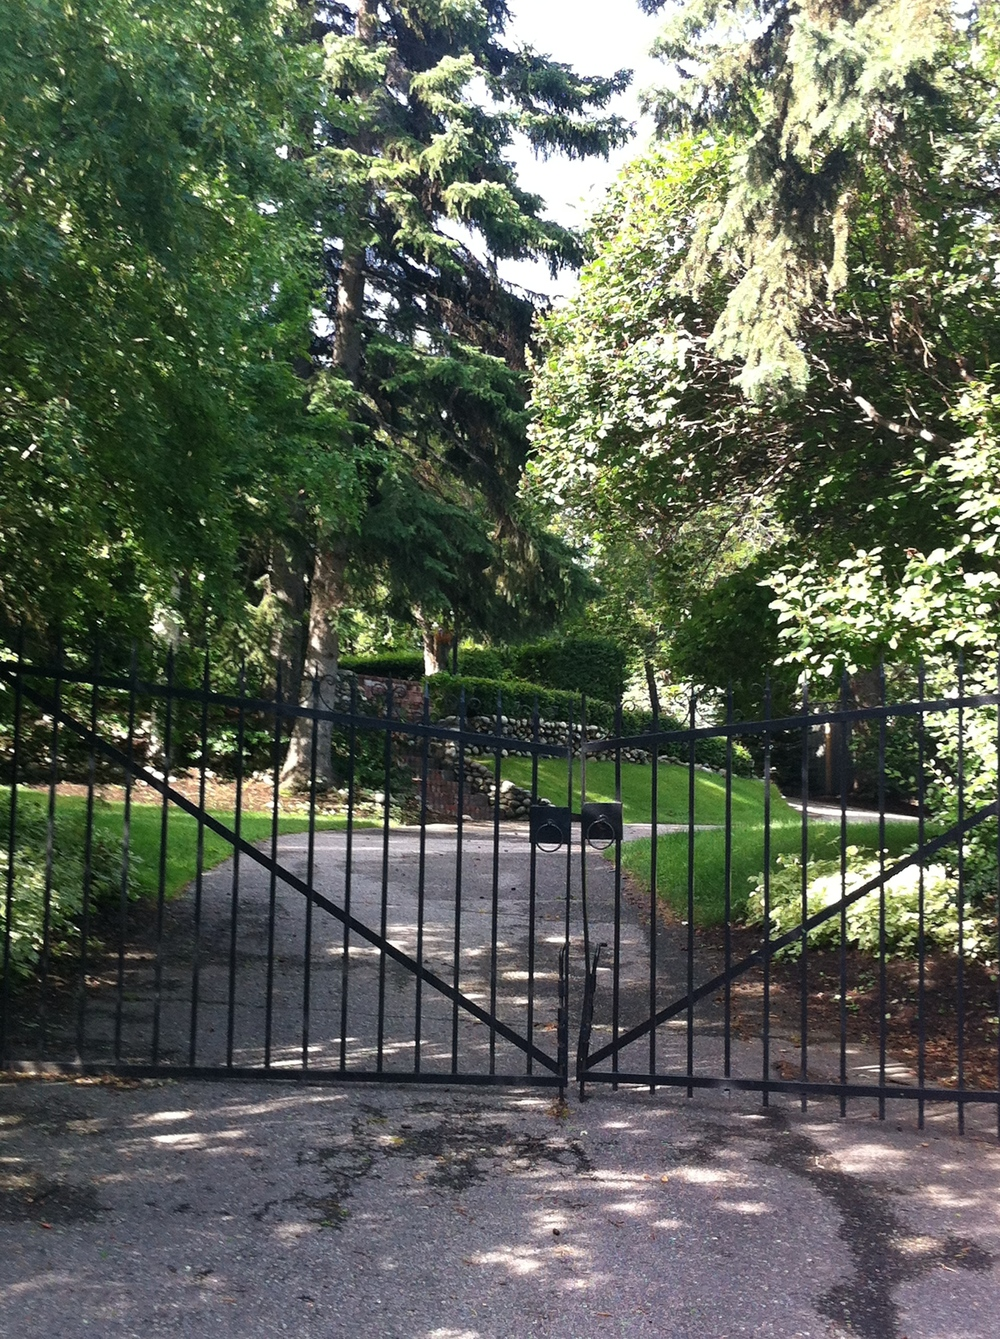 Many of the homes have huge lots that are like private parks.